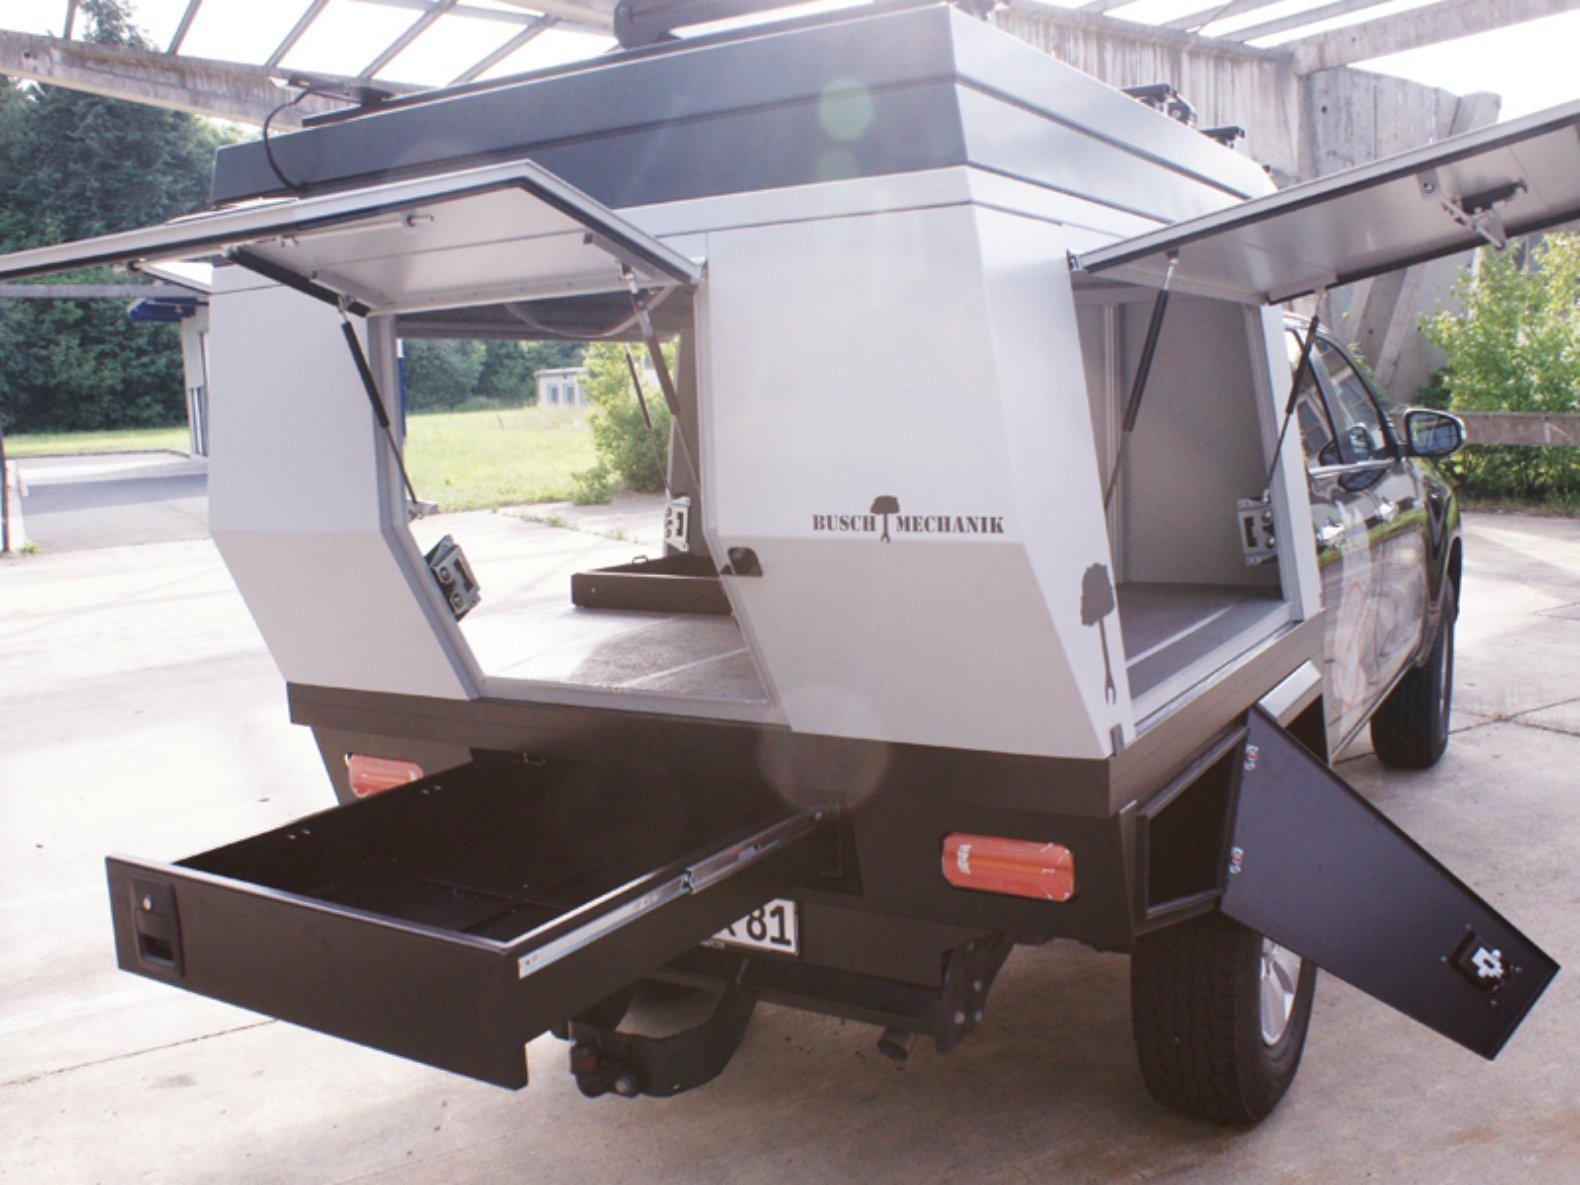 This Pop Up Camper Transforms Any Truck Into A Tiny Mobile